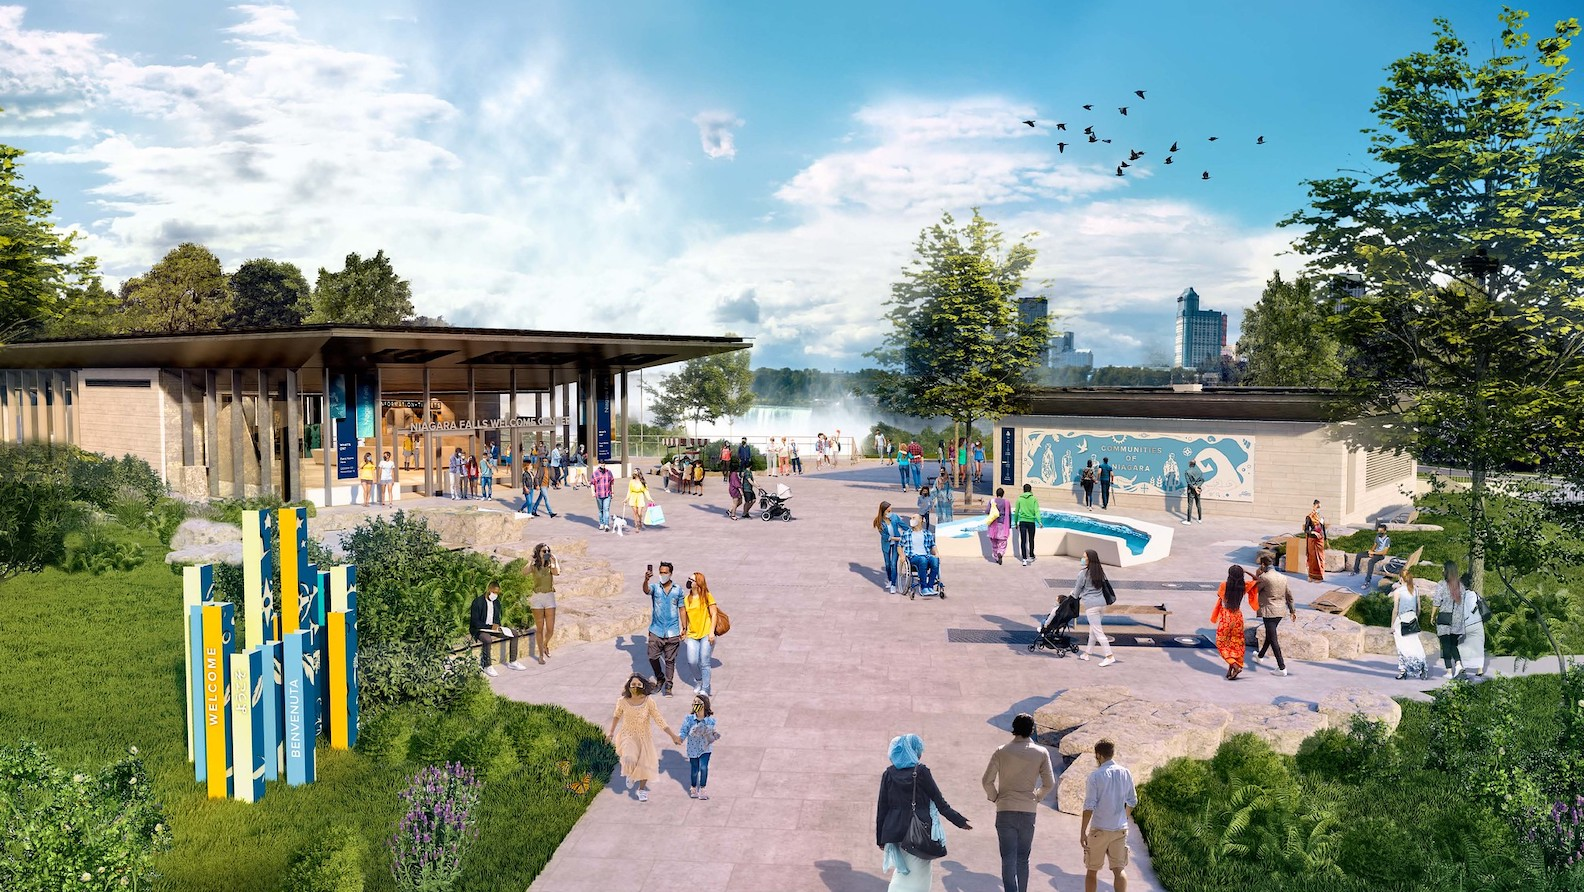 An artist's rendering of a reimagined Niagara Falls State Park welcome center. (Images courtesy of the Office of Gov. Andrew M. Cuomo)